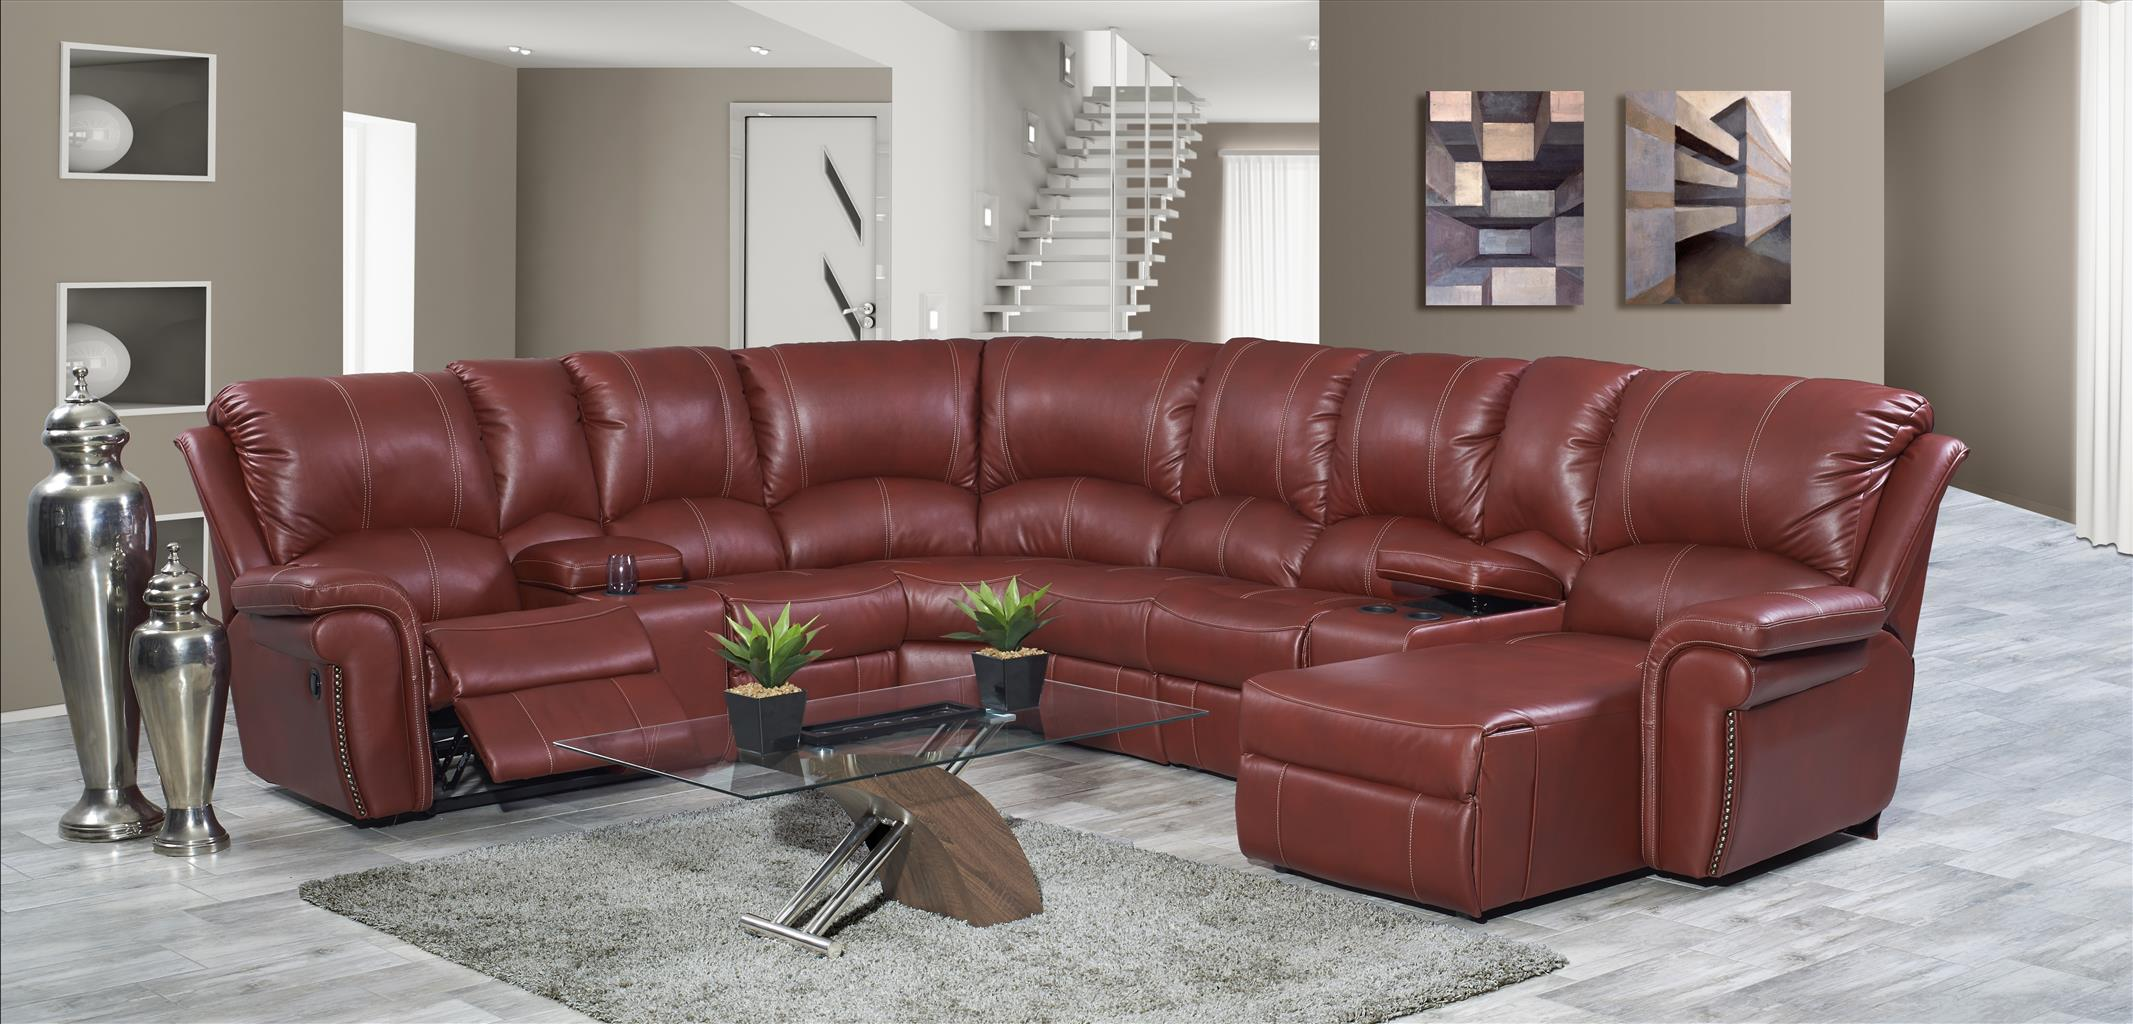 Brand New Jersey 7 Piece Corner Lounge Suite For Only R25999 Air